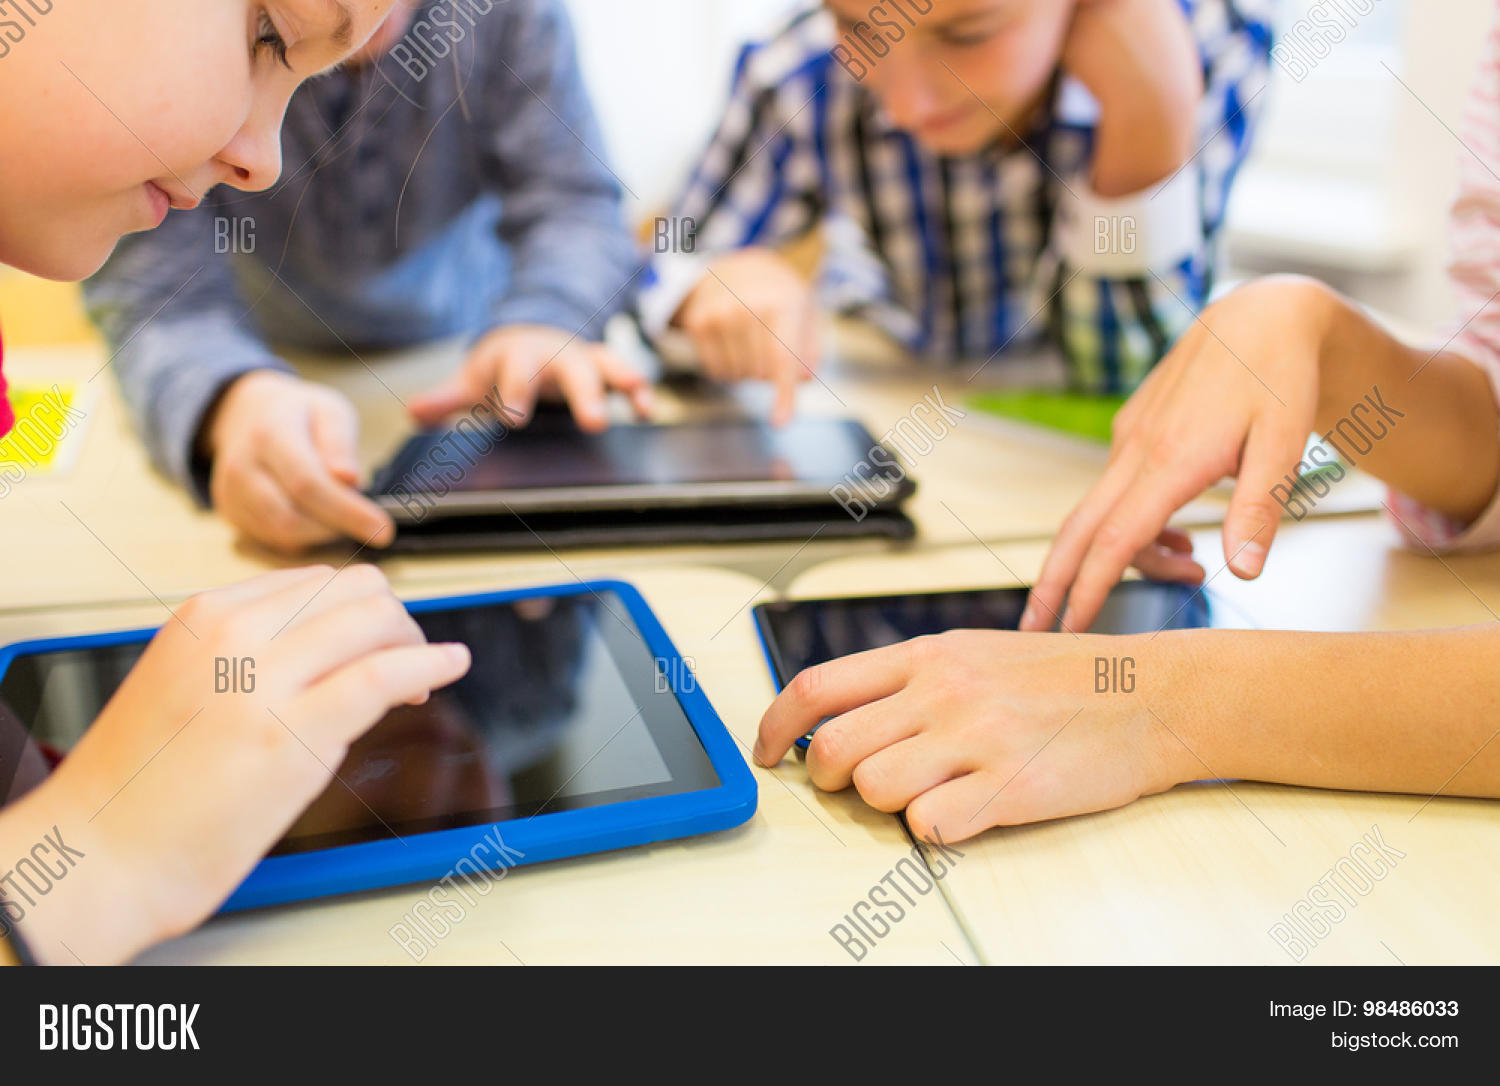 Technology In Elementary Classrooms : Education elementary school image photo bigstock